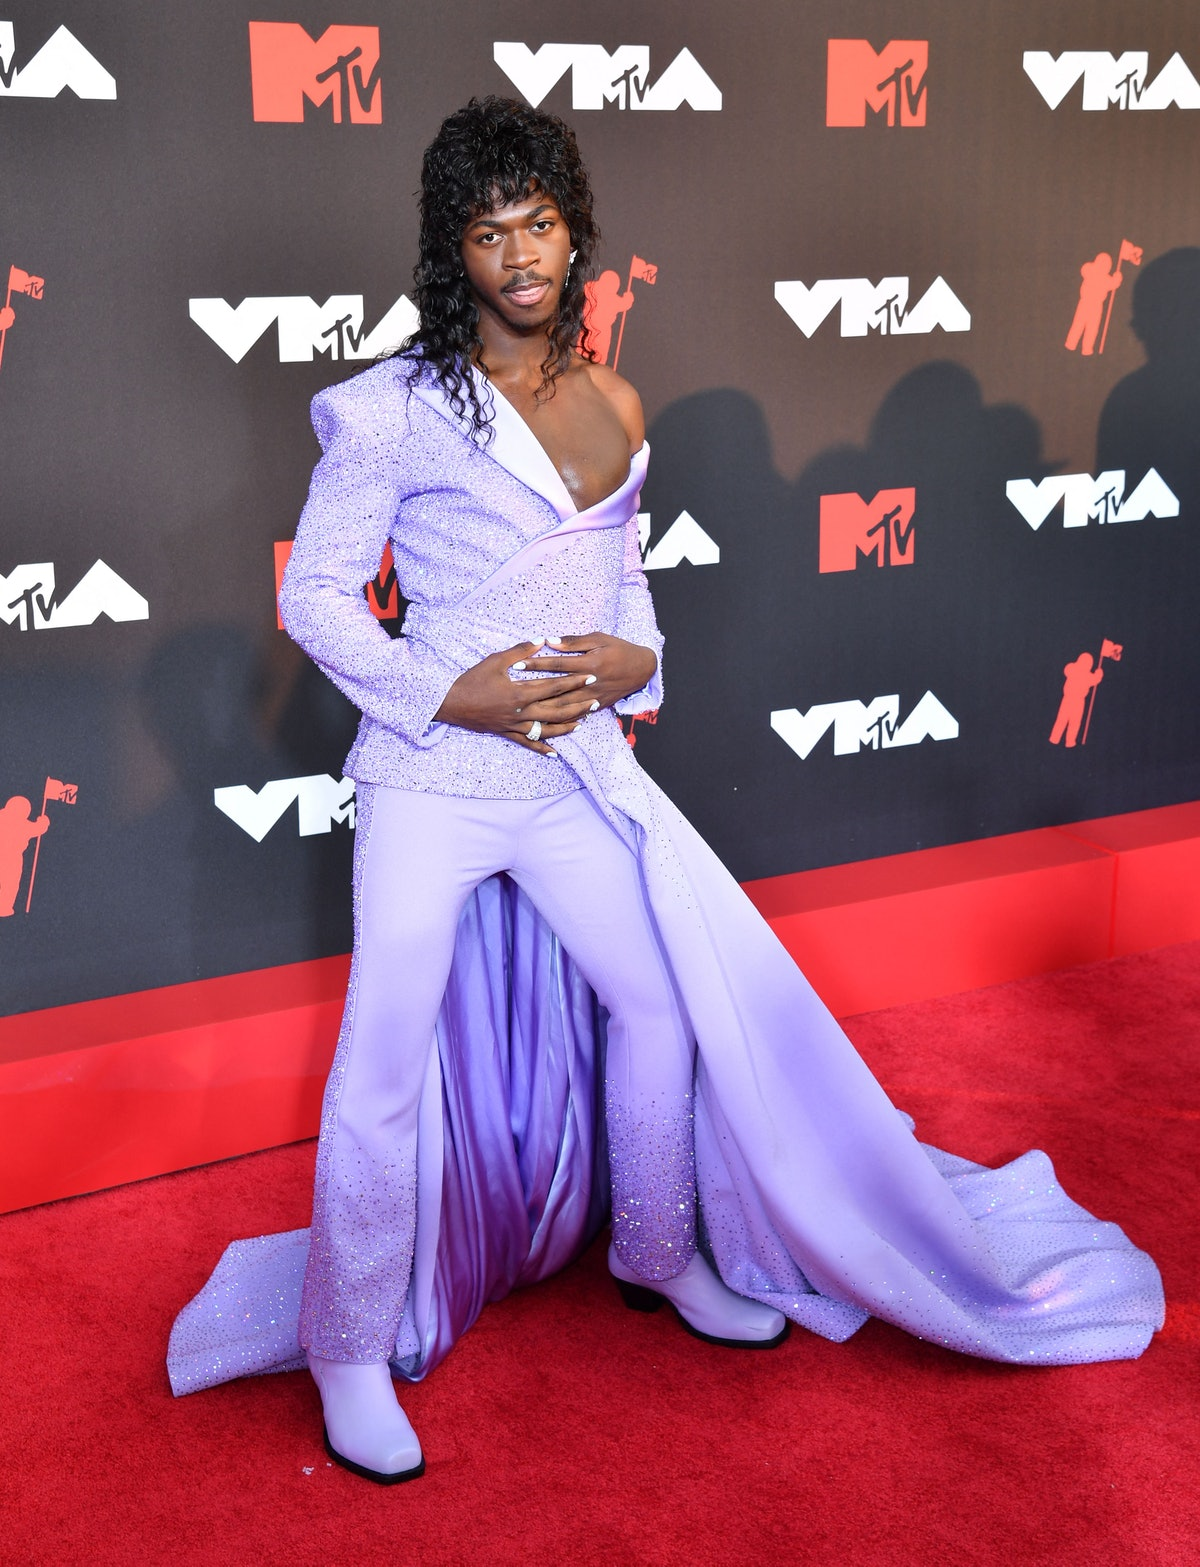 US rapper Lil Nas X arrives for the 2021 MTV Video Music Awards at Barclays Center in Brooklyn, New ...